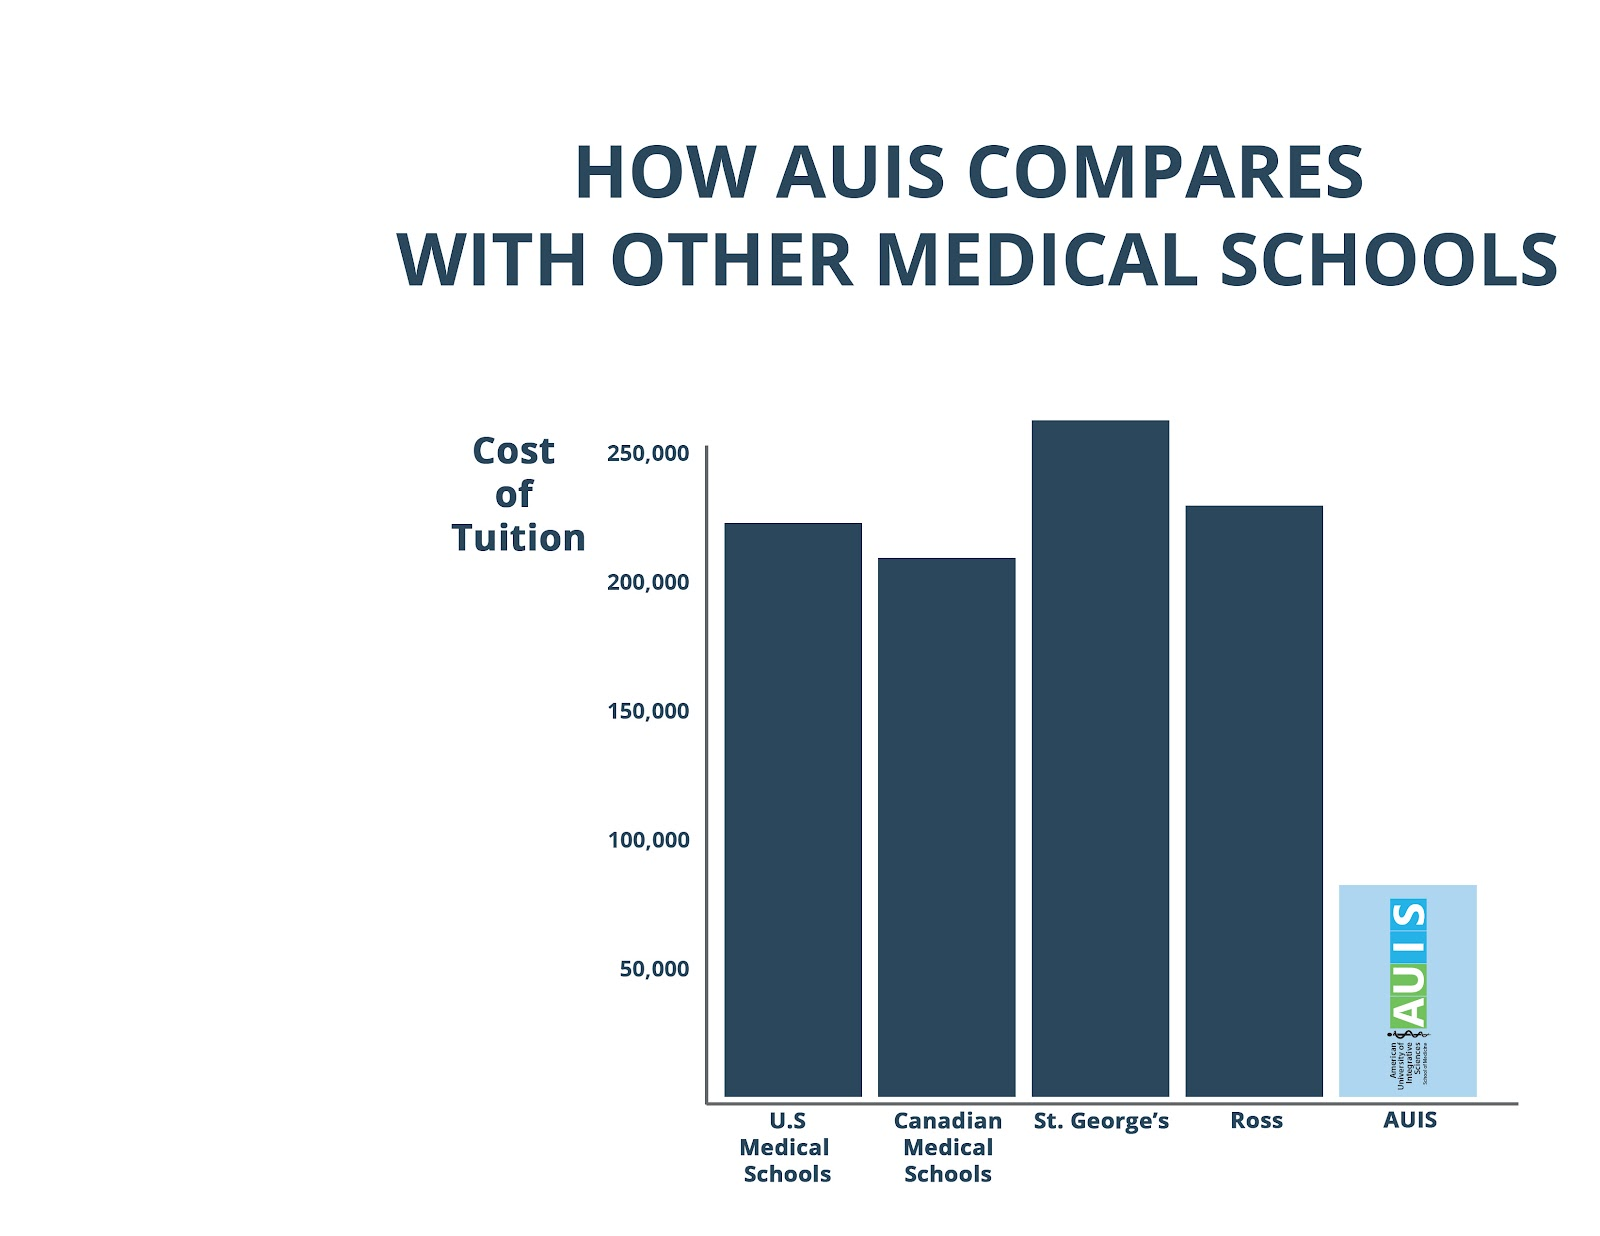 Compare AUIS costs to other schools